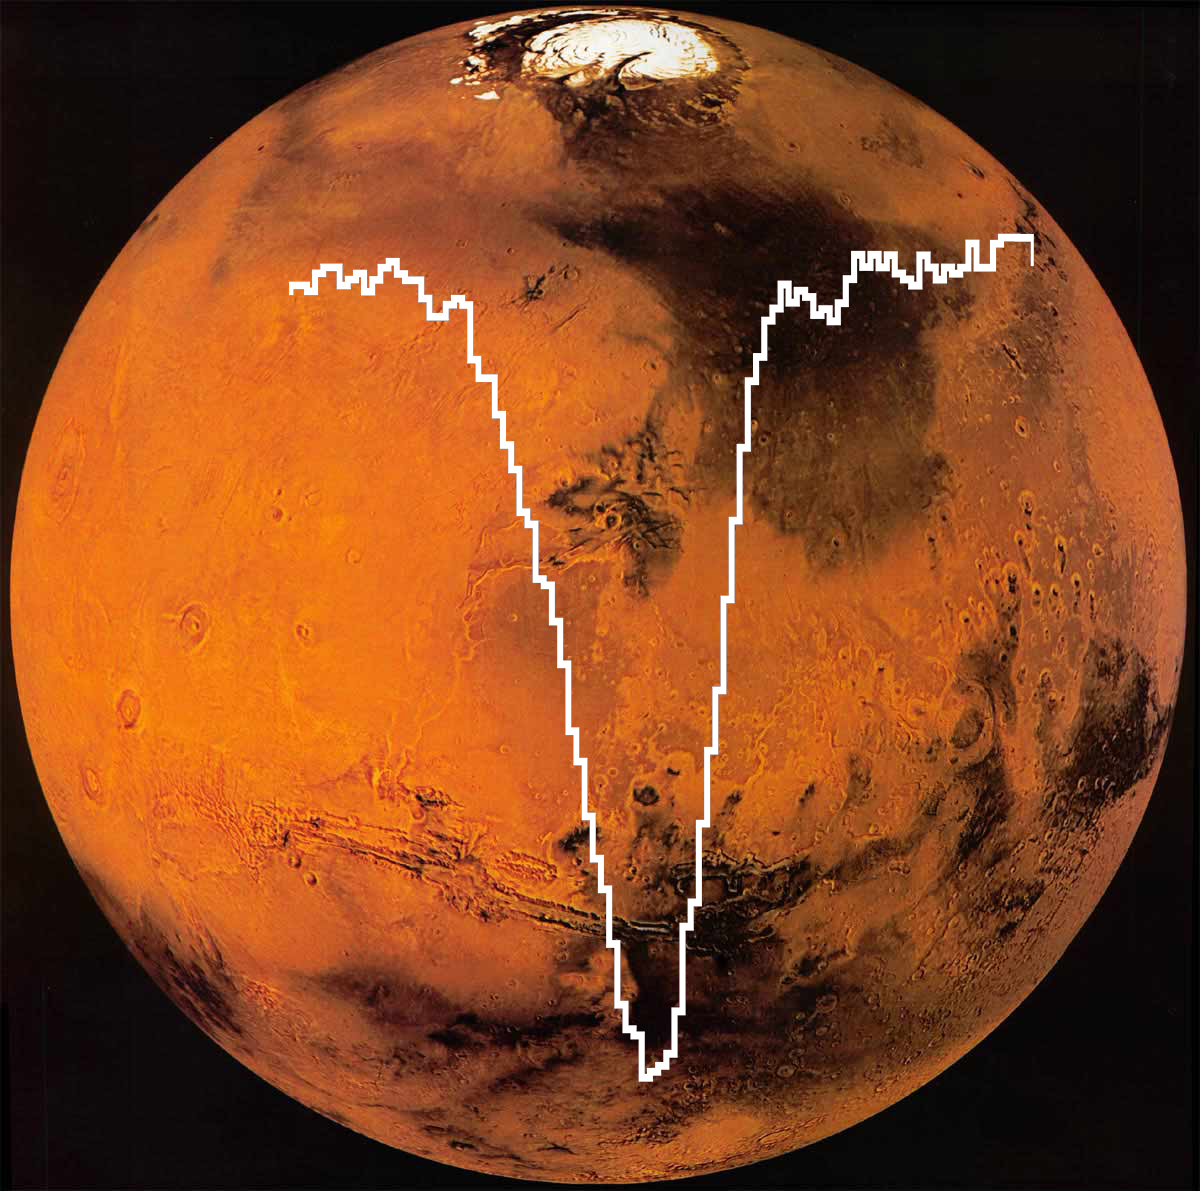 SOFIA/GREAT spectrum of oxygen [O I] superimposed on a Viking 1 composite image of Mars by USGS University of Arizona. The amount of atomic oxygen computed from this SOFIA data is about half the amount expected.